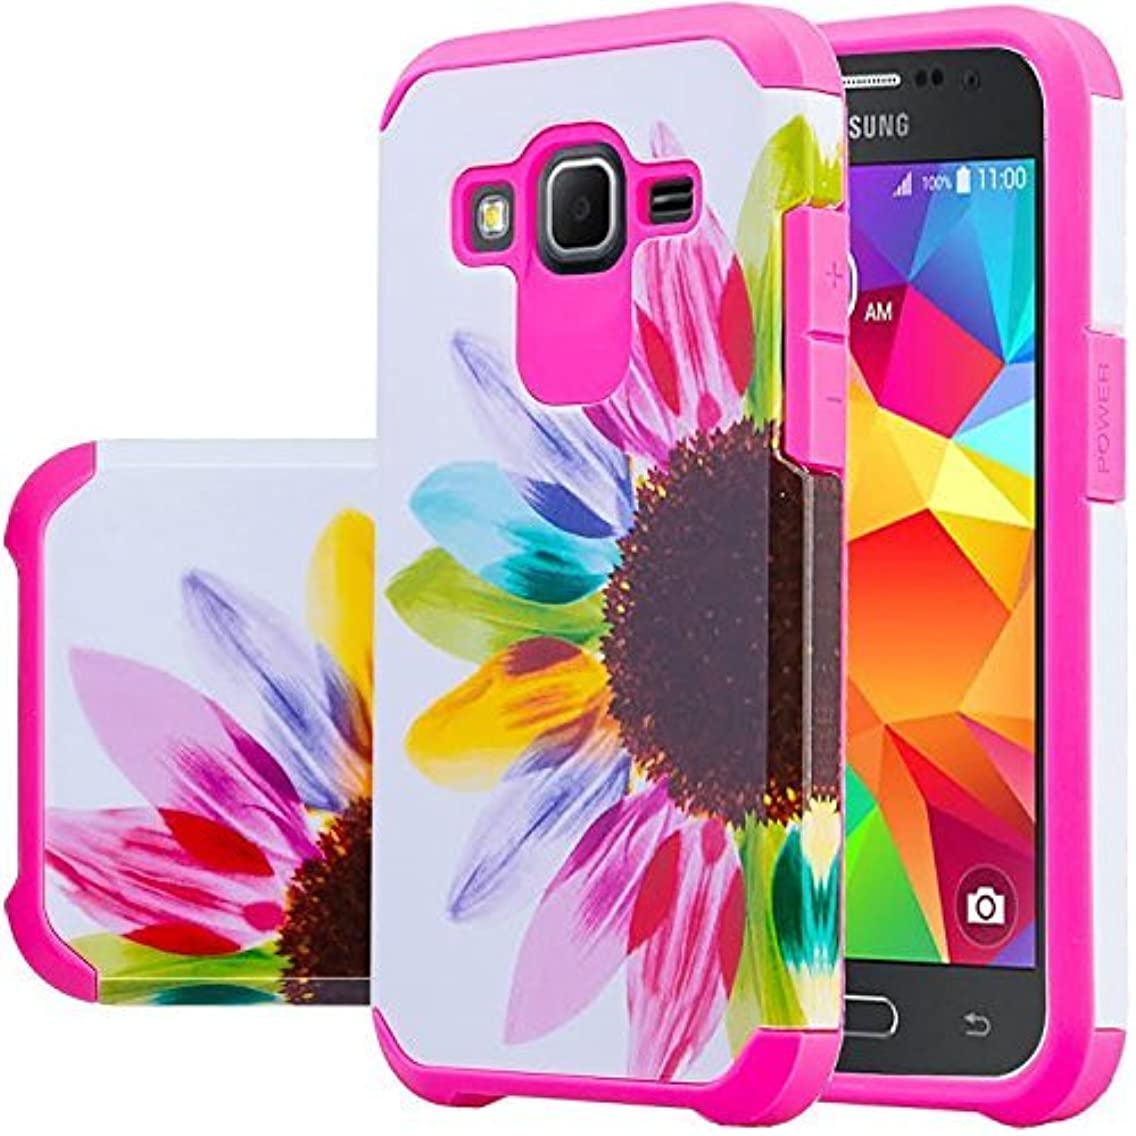 Wydan Case for Samsung Galaxy Grand Prime G530, Go Prime, Grand Prime Plus - Fusion High Impact Hybrid Hard Gel Shockproof Case Heavy Duty Phone Cover - Colorful Sunflower